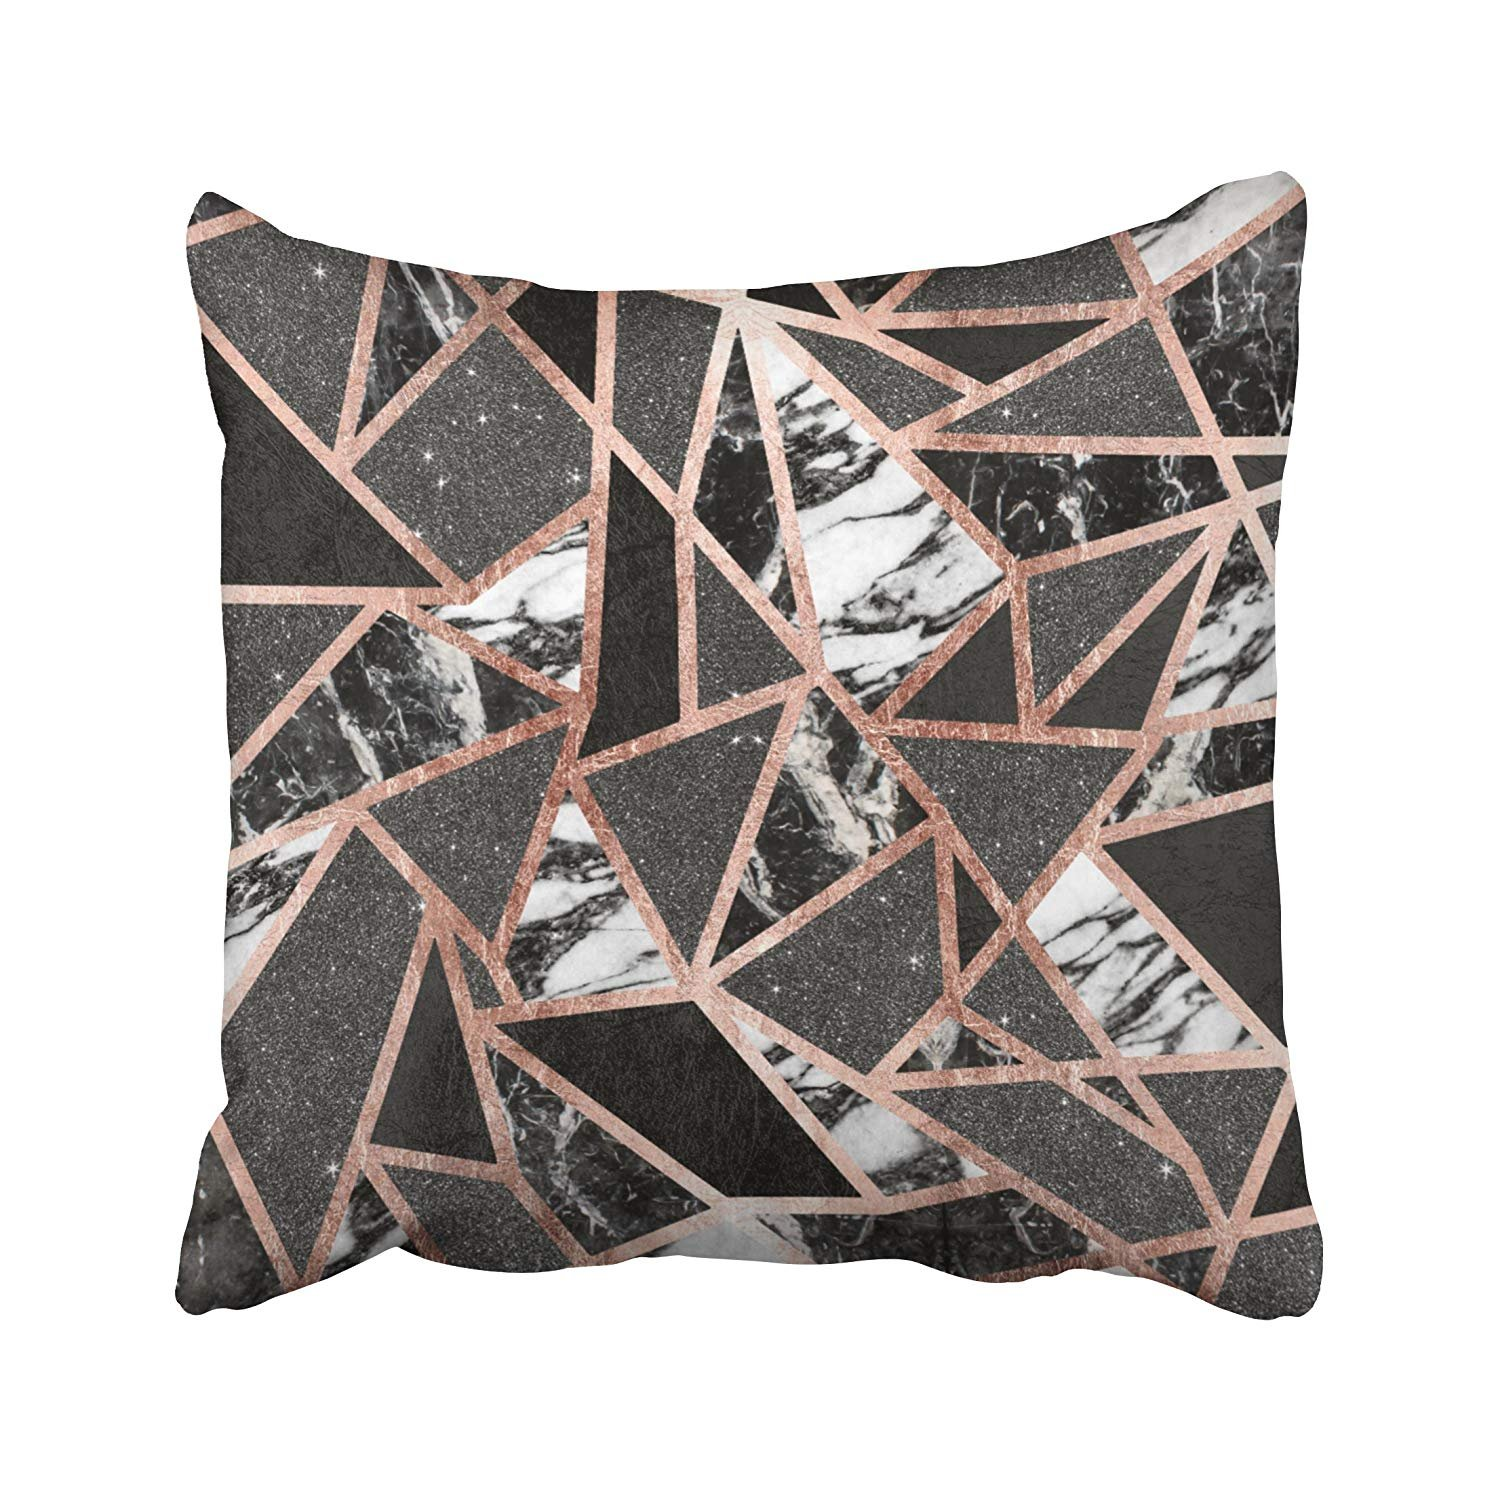 Modern Rose Gold Glitter Marble Geometric Triangle Accent Pillowcases Polyester 18 X 18 inch Square with Hidden Zipper Home Sofa Cushion Decorative Pillowcase ABC